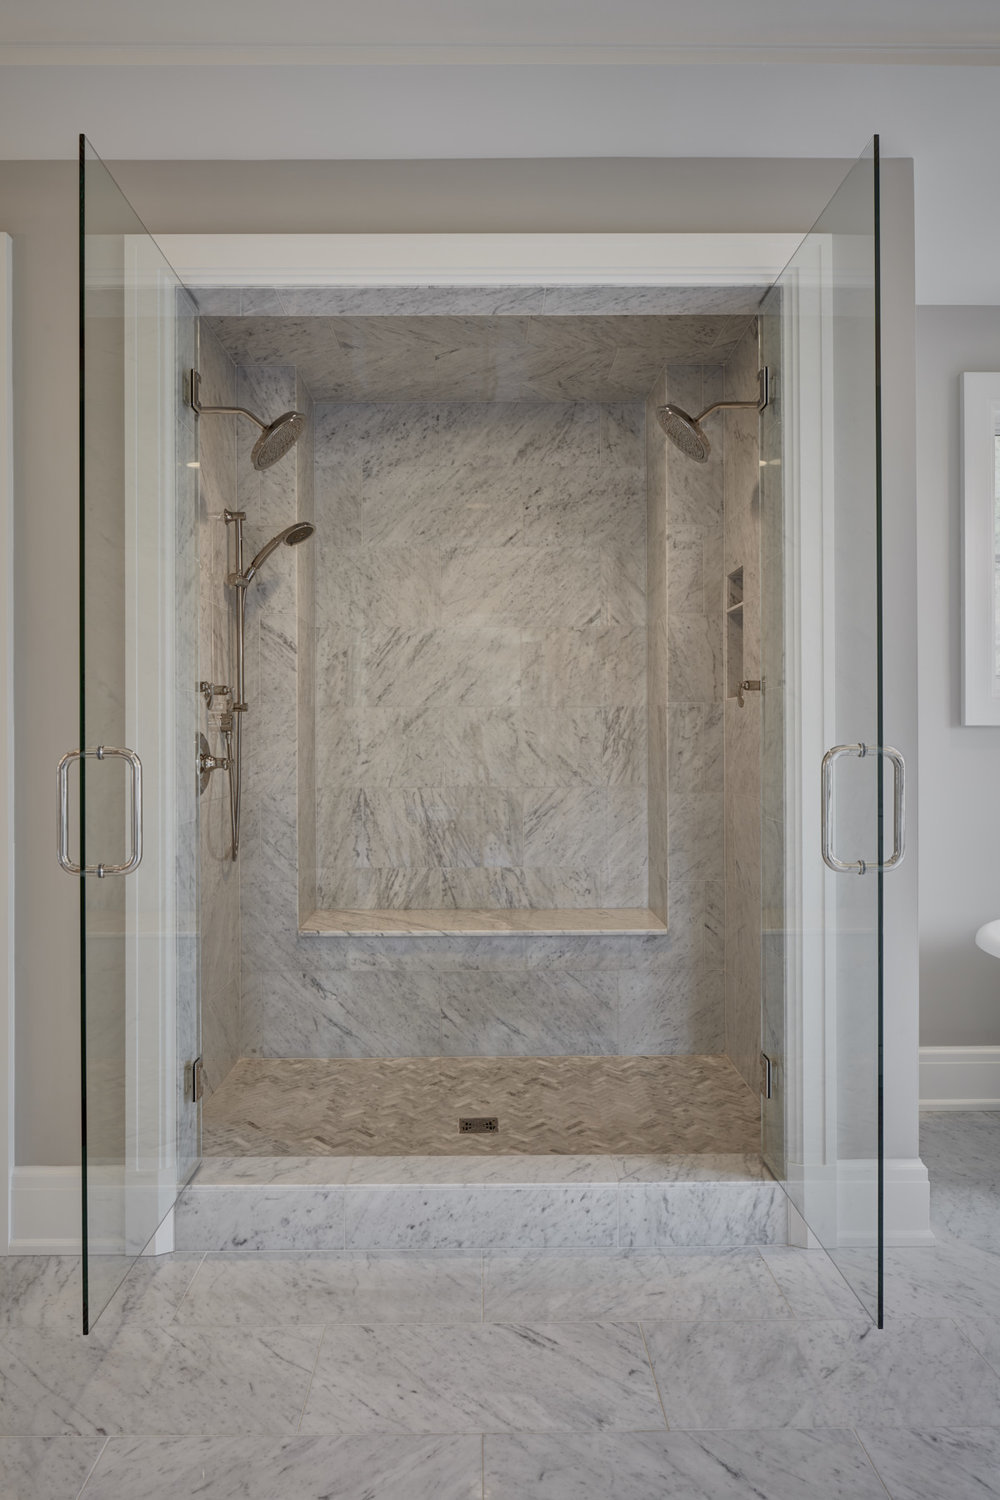 634 Glenhurst-HM Homes-4-12-17-Master Shower-8bitTIFF.jpg